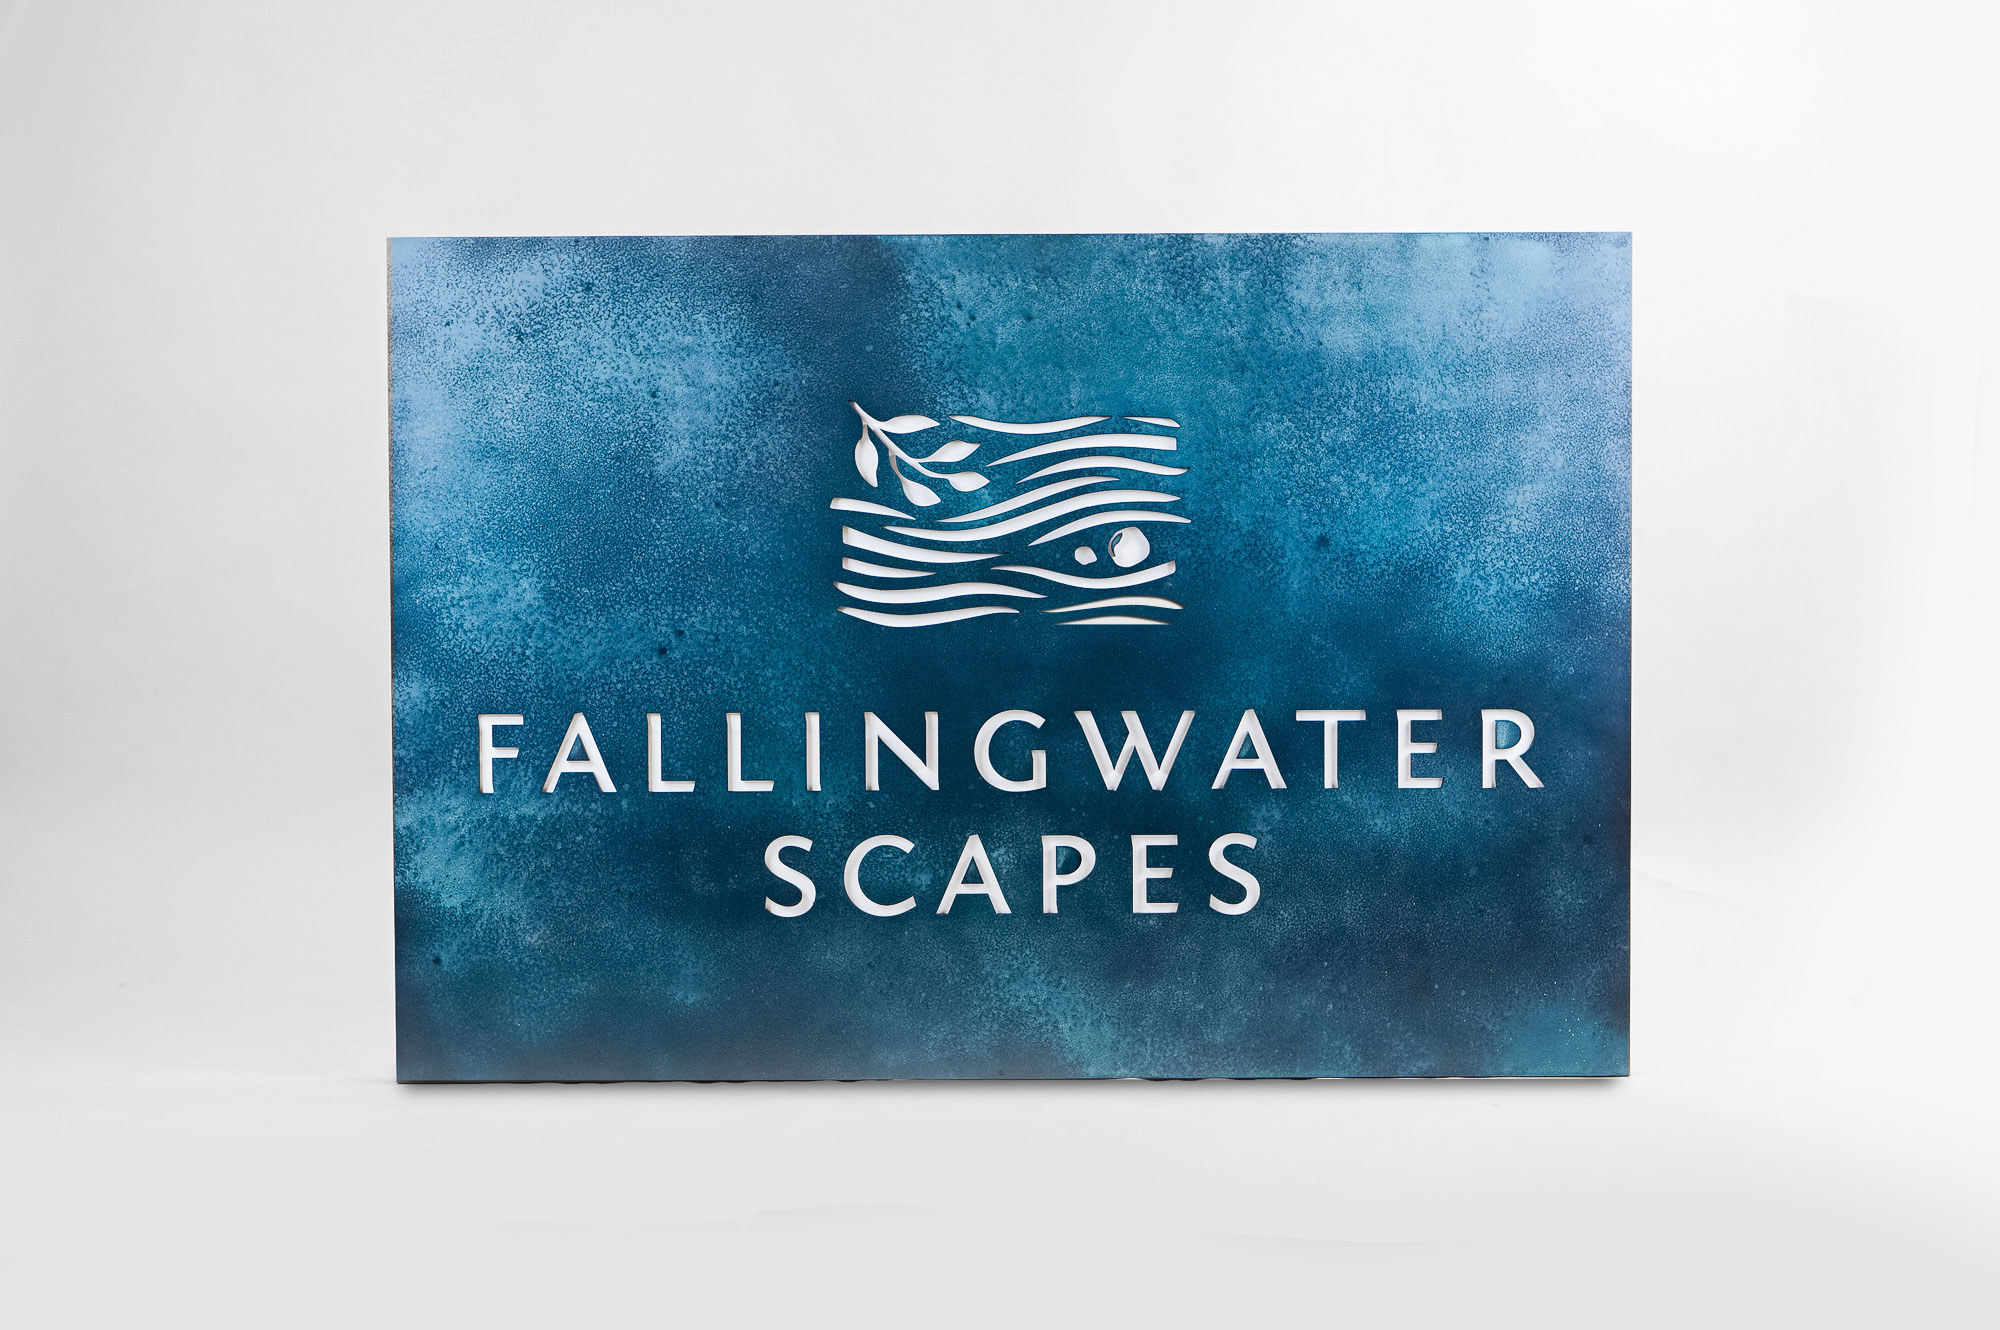 Blue-hued, rusted bronze/brass/copper patina style sign for FallingWater Scapes, a water feature design, construction and maintenance company in Dover, MA.